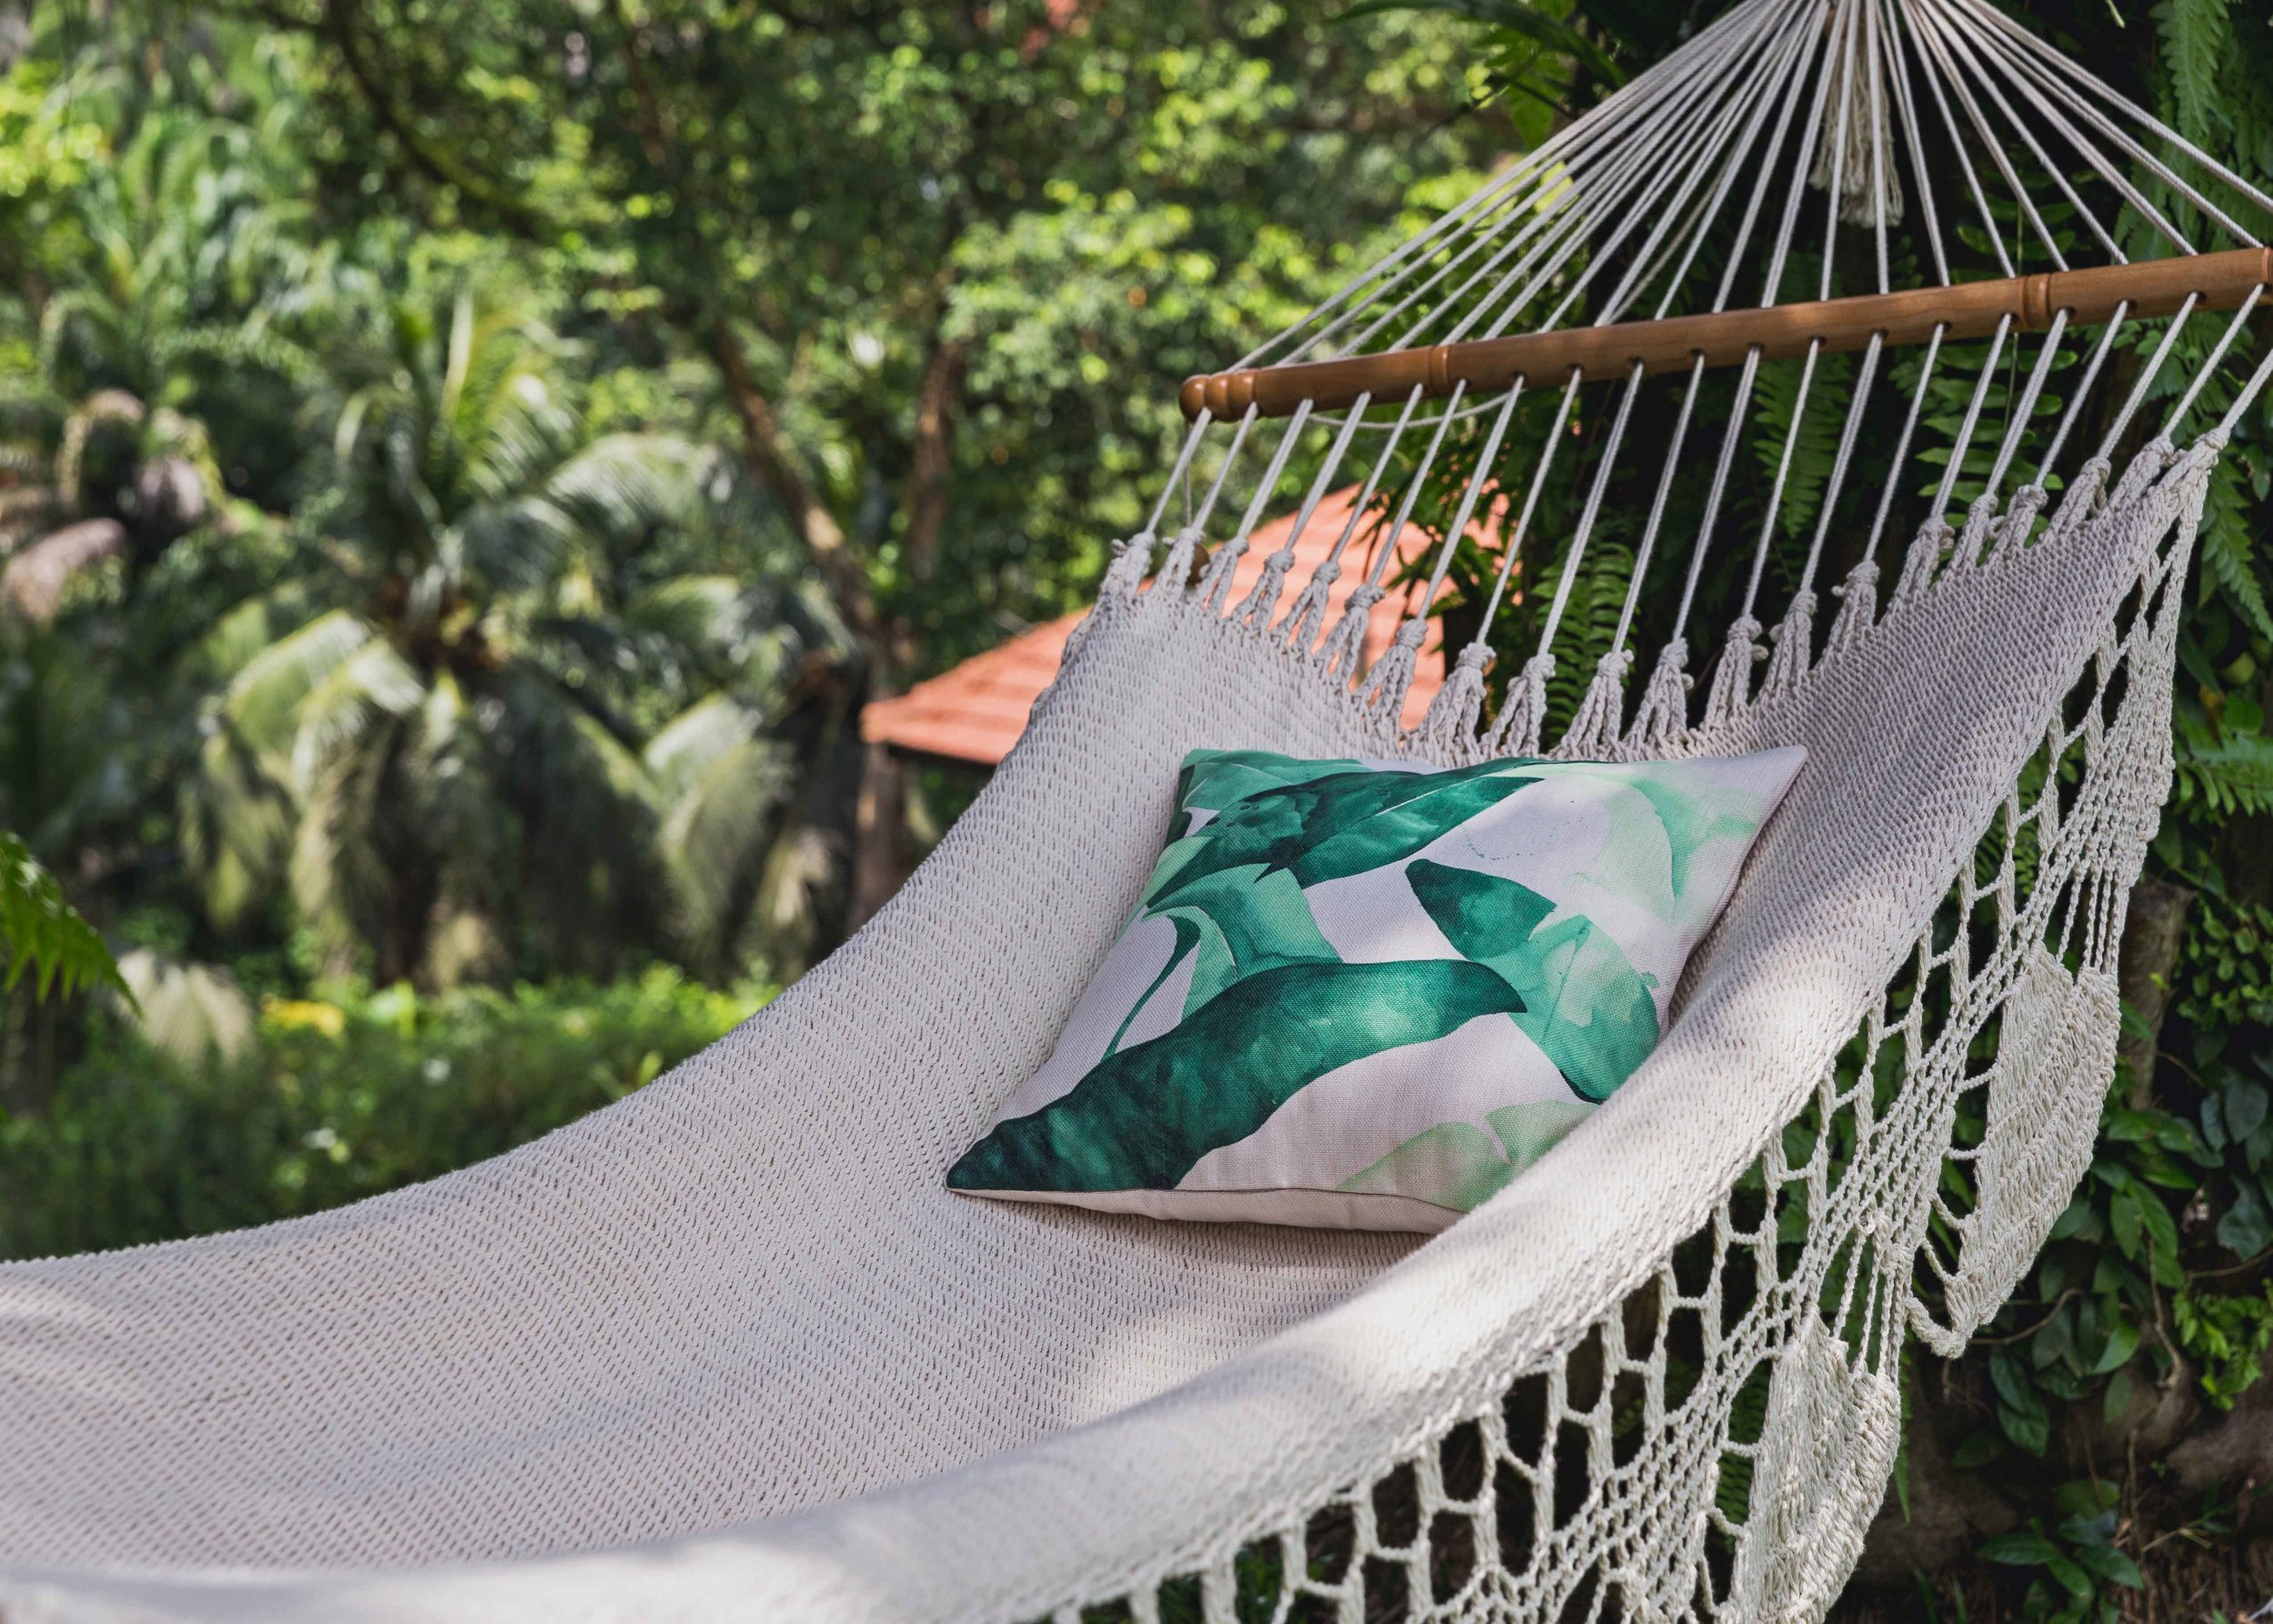 Luxurious Hammock - Crocheted from soft cotton by Nicaraguan artists using a double weave technique, this hammock has to be the most comfortable in all of South East Asia!